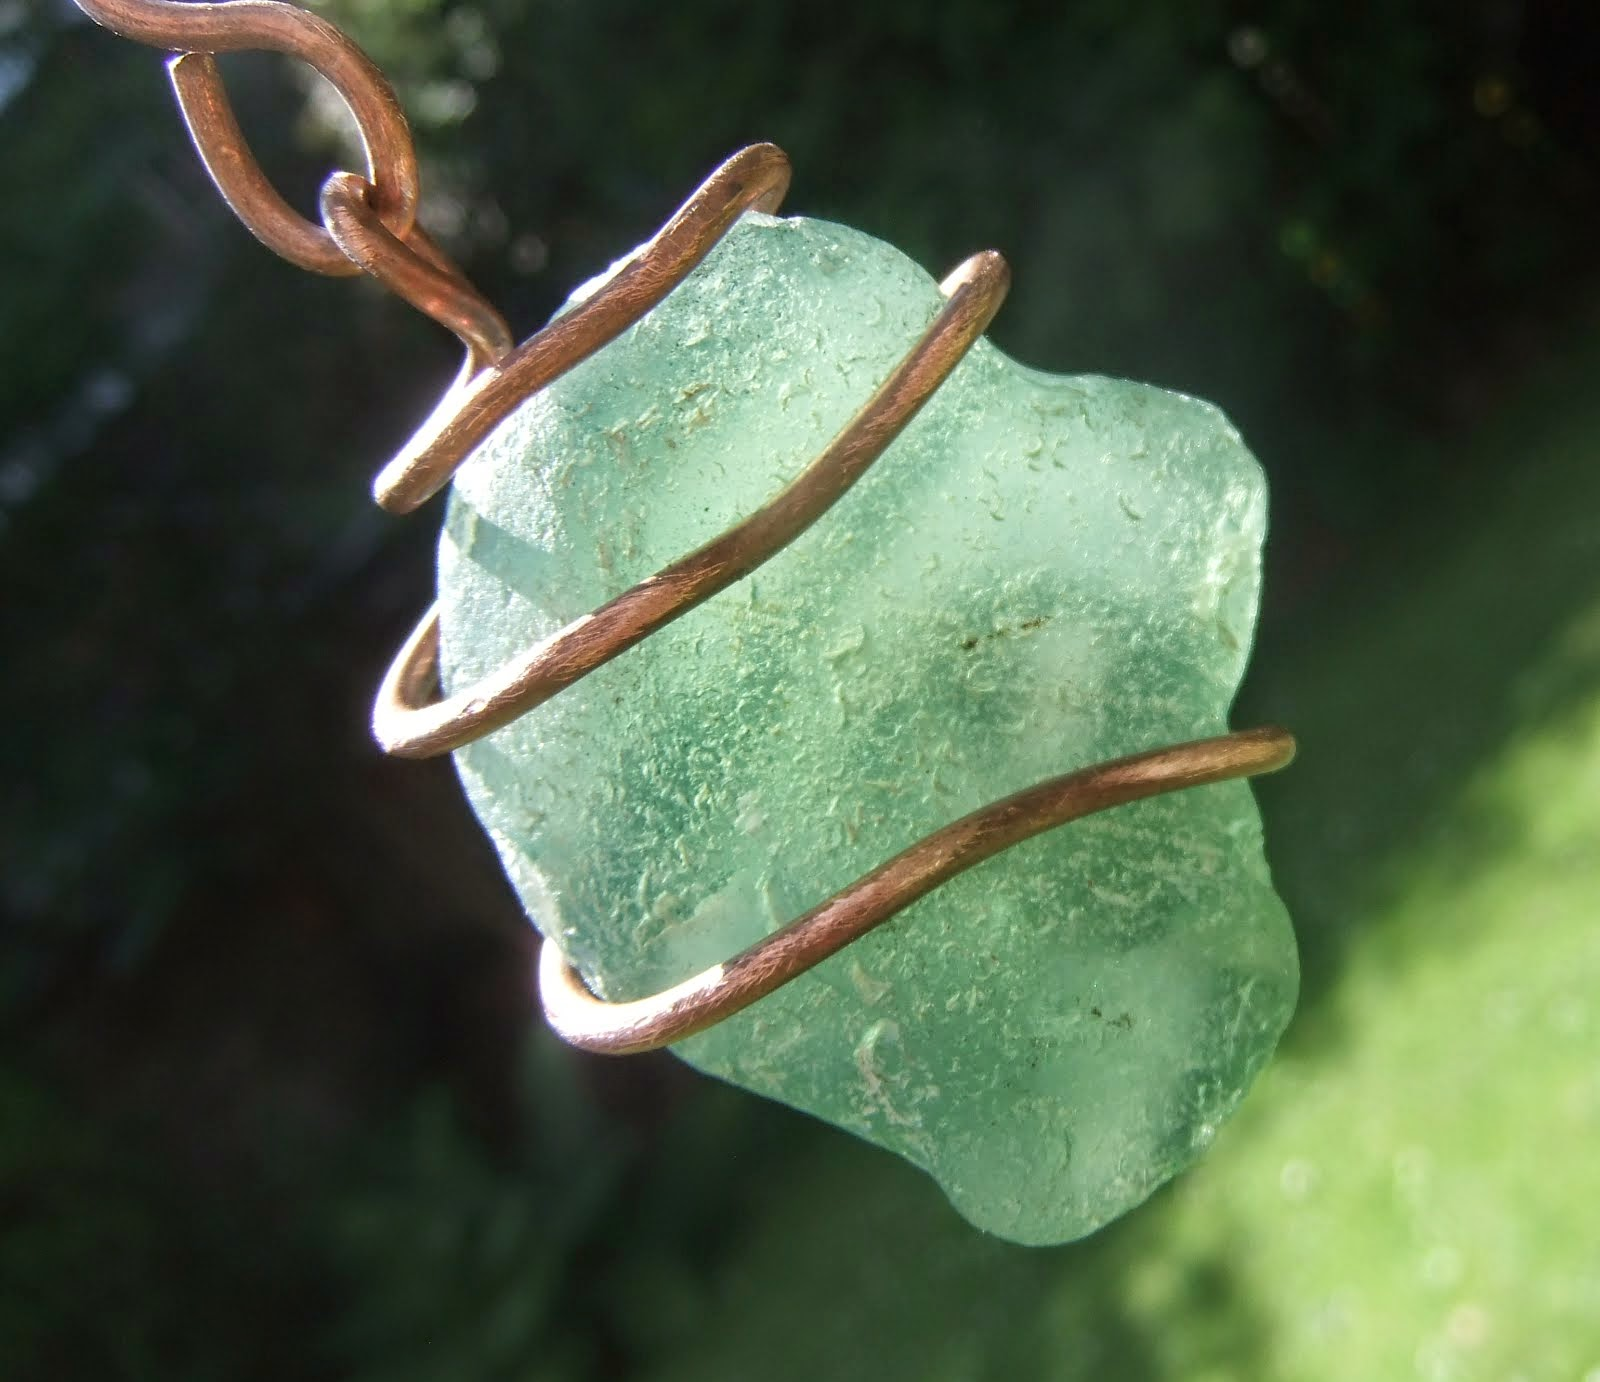 Scottish Sea Glass catching the sun...